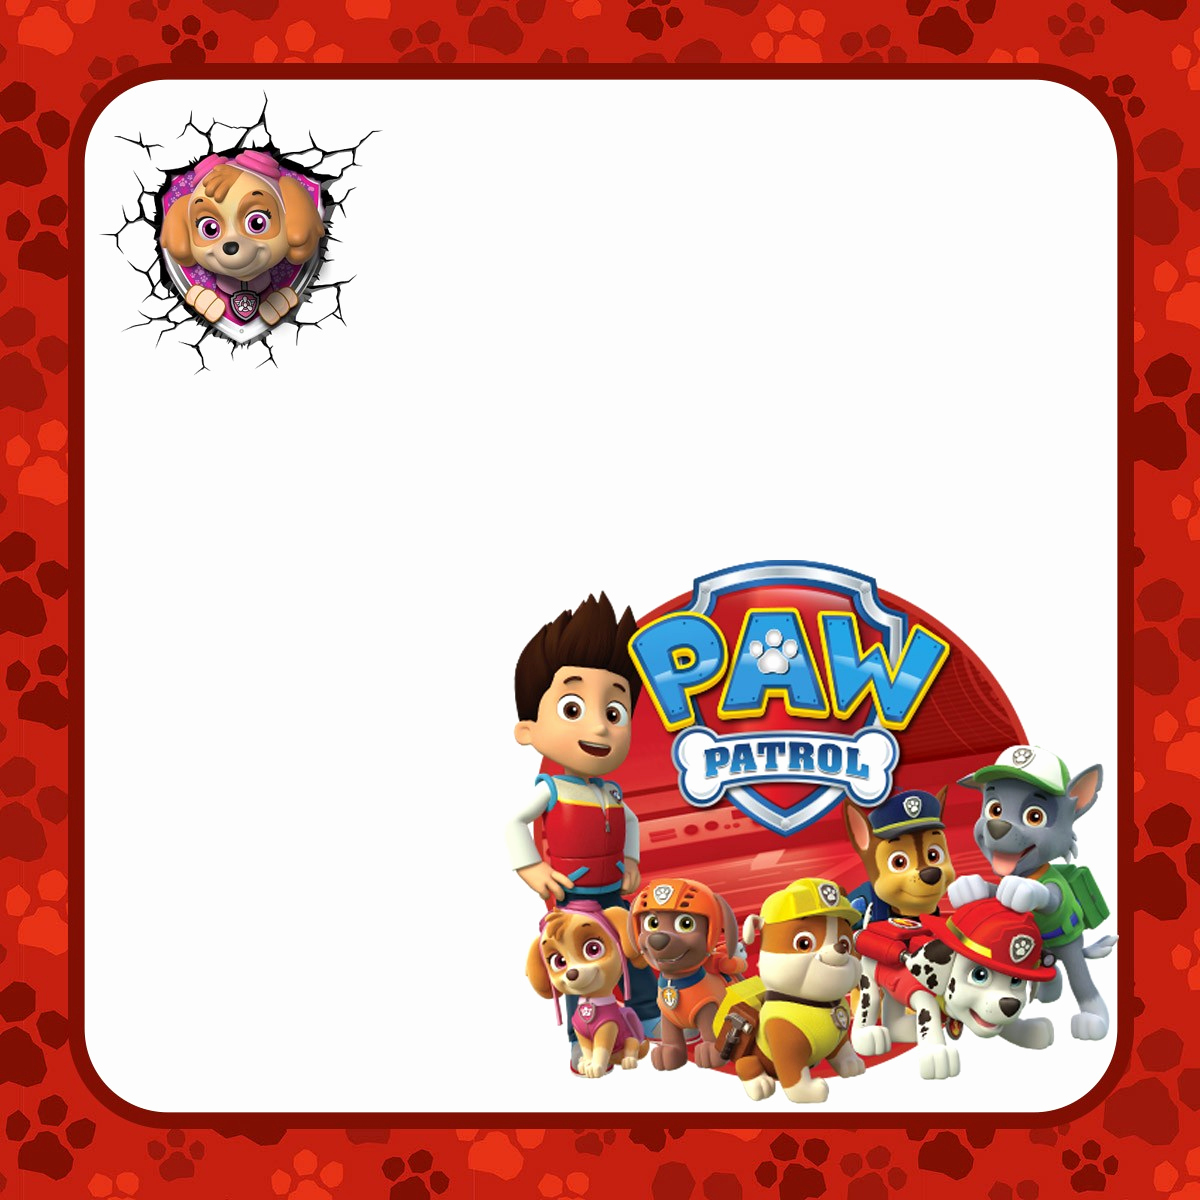 Paw Patrol Invitation Templates Unique Make Printable Paw Patrol Invitations Using Free Templates